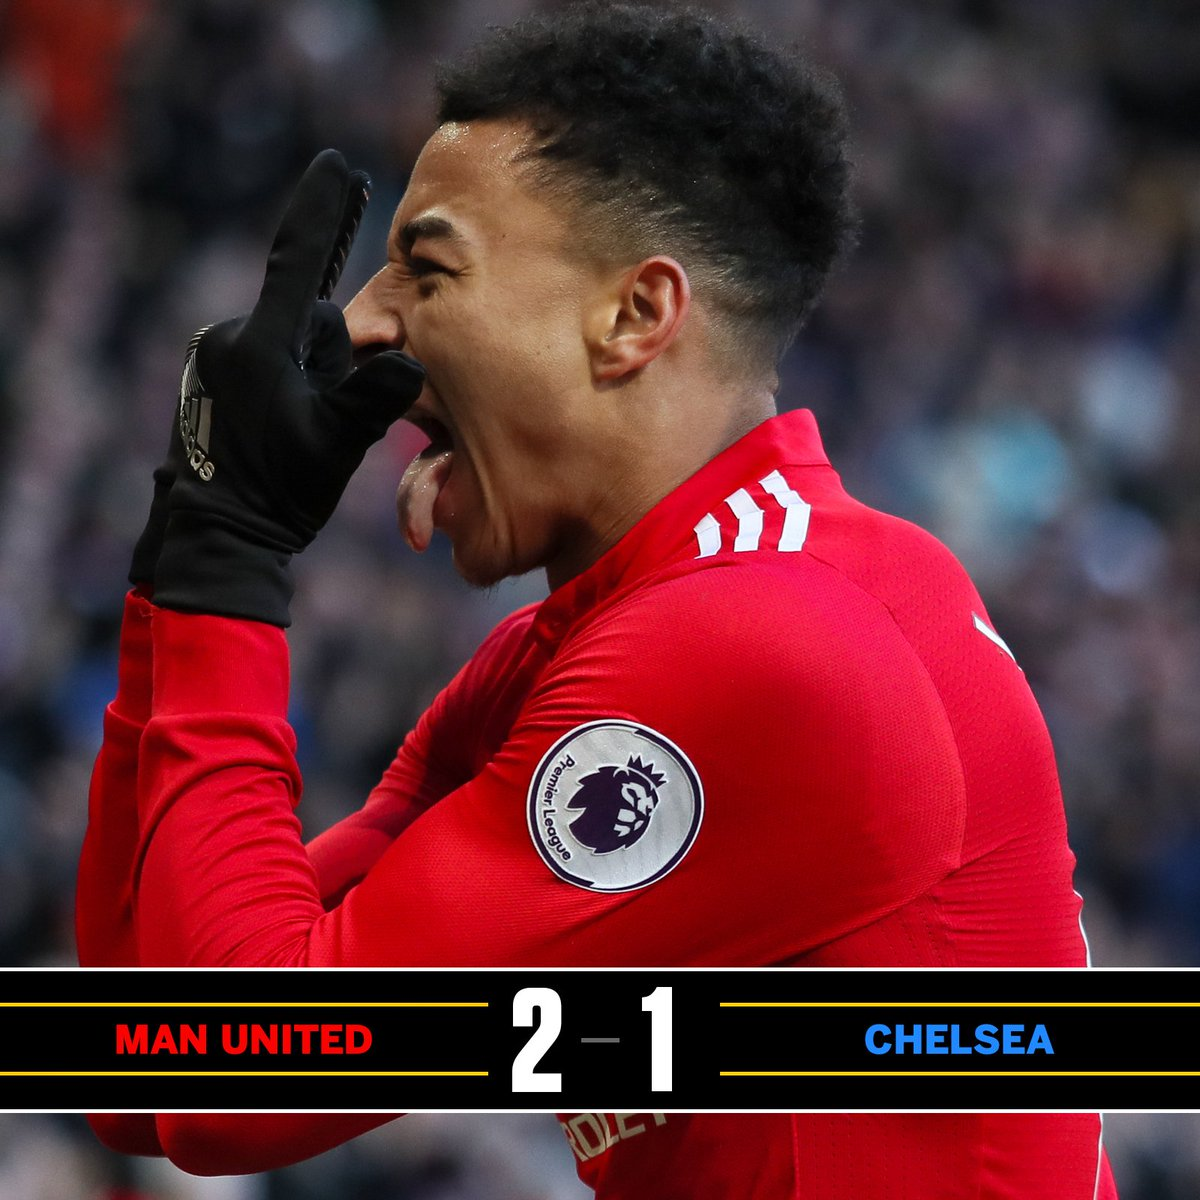 Romelu Lukaku and Jesse Lingard both score as Manchester United come from behind to win!